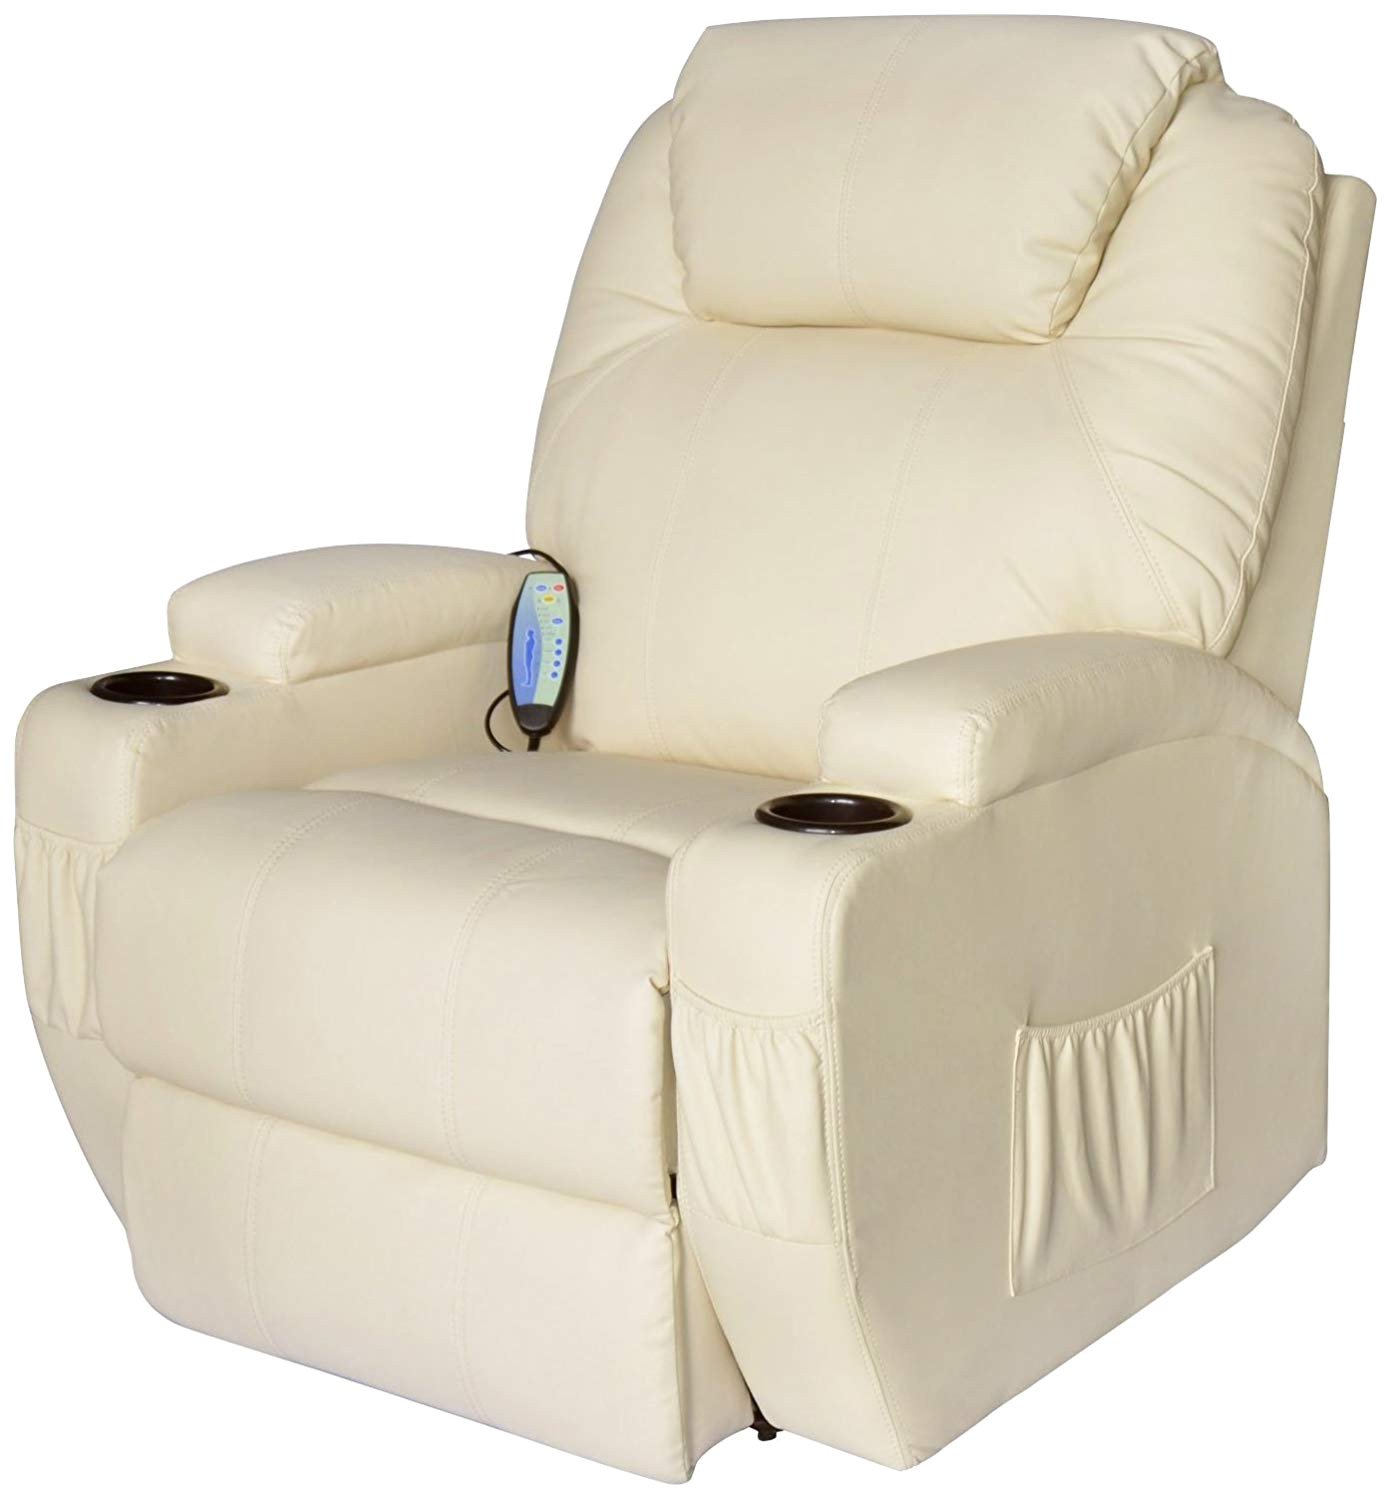 amazon com homcom faux leather heated vibrating recliner chair with remote cream white kitchen dining